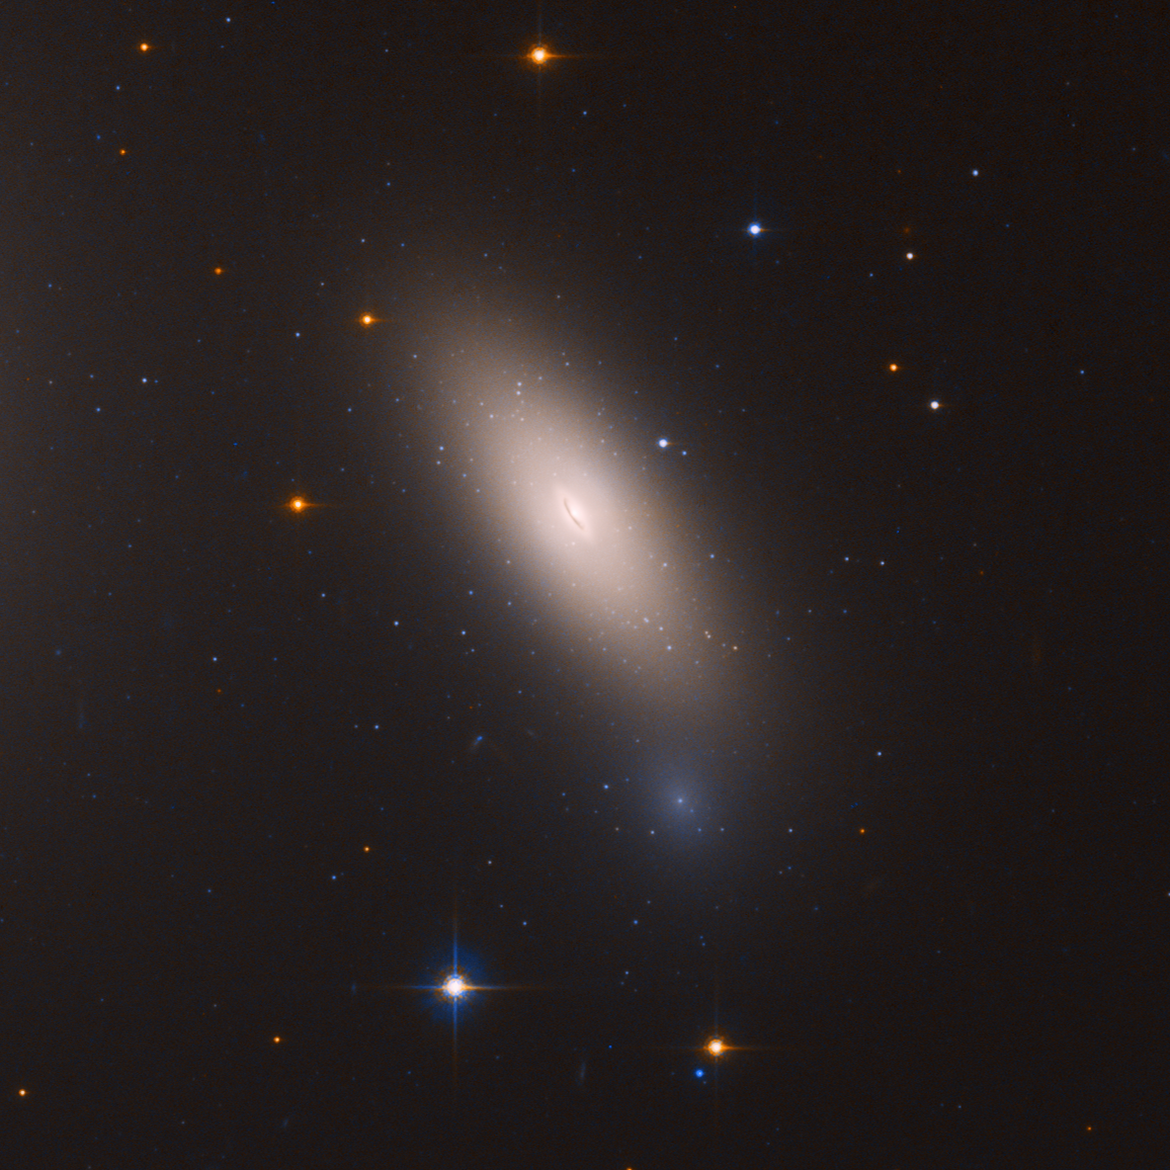 NGC 1277 is a galaxy that appears, despite its size, to have remained unchanged since it formed billions of years ago. Almost all the little fuzzies you see in the image are globular clusters.